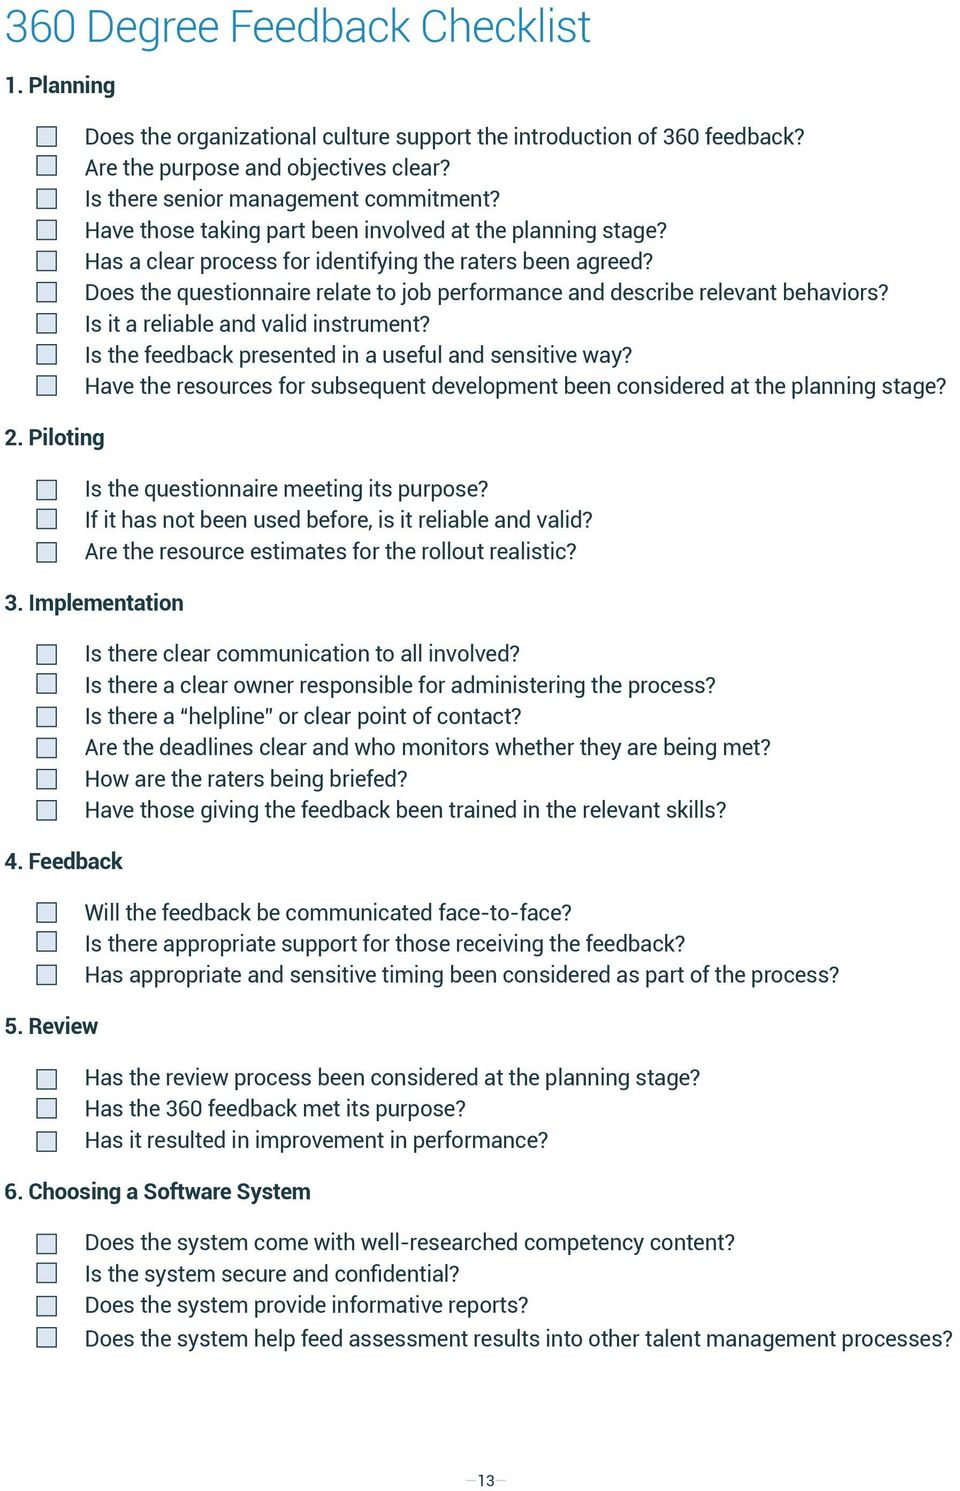 Does the questionnaire relate to job performance and describe relevant behaviors? Is it a reliable and valid instrument? Is the feedback presented in a useful and sensitive way?